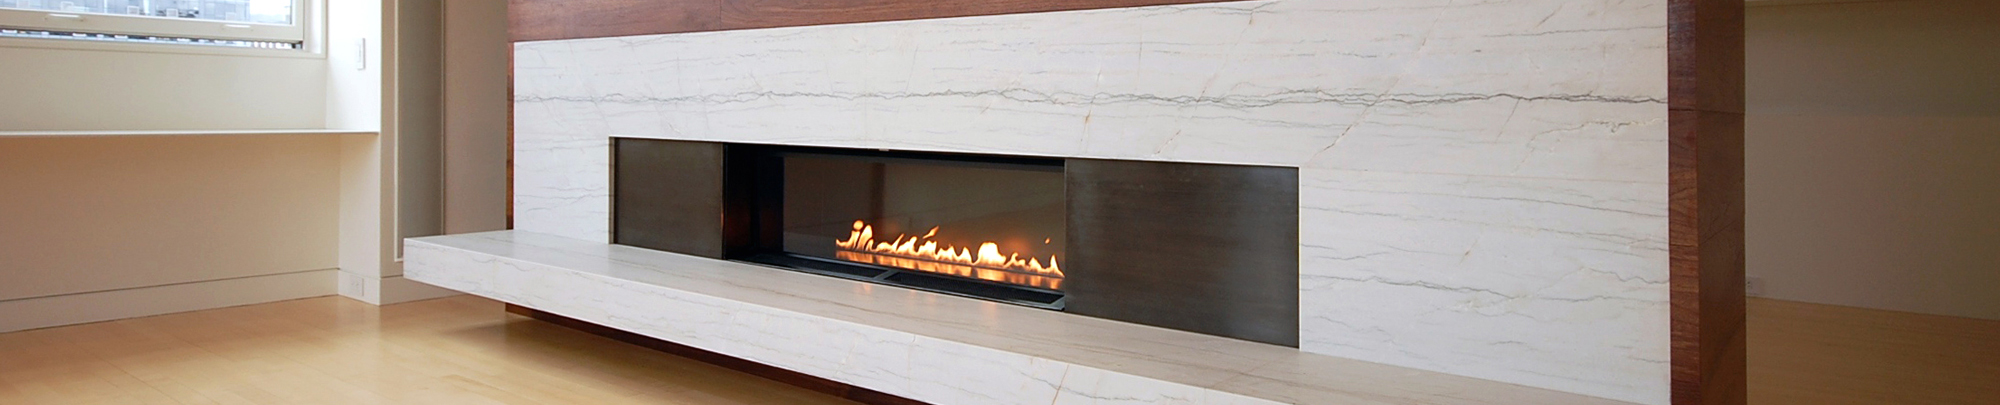 A Modern Classic that Defies the Ordinary .Create a flawless focal point with the sleek Fire Ribbon Direct Vent Single Vu Fireplace from Spark Fires.